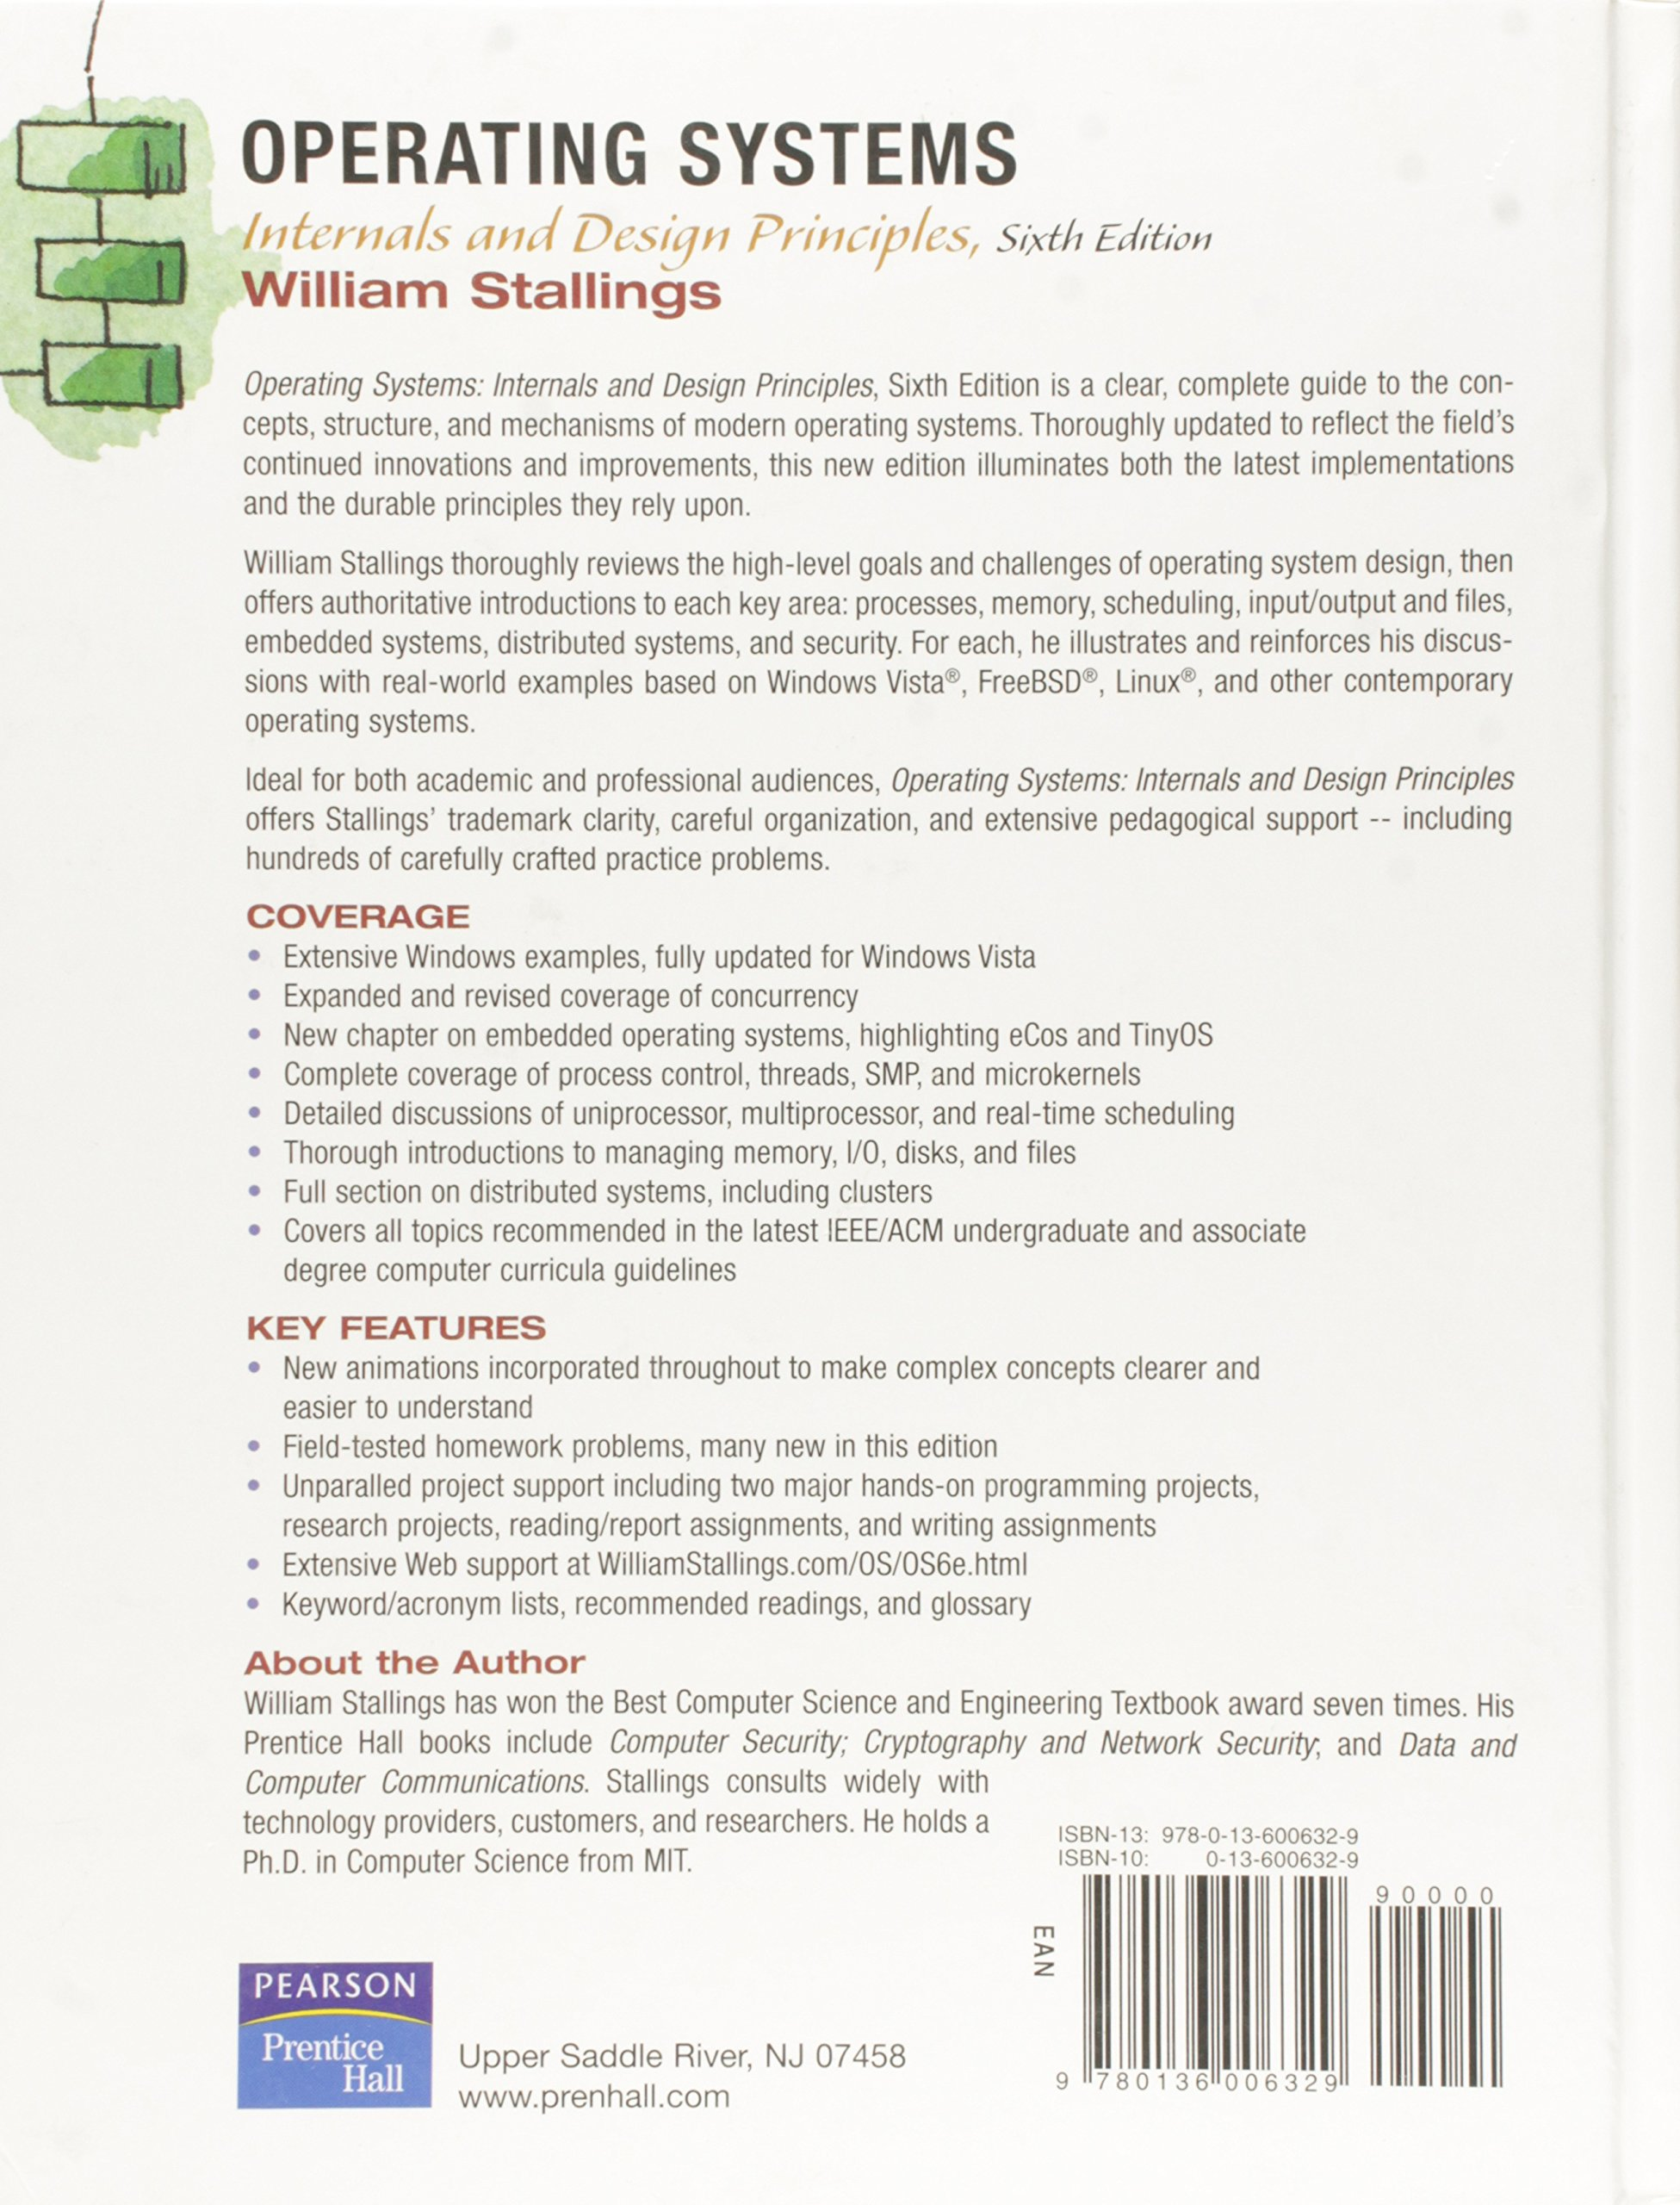 Buy operating systems internals and design principles united buy operating systems internals and design principles united states edition book online at low prices in india operating systems internals and design fandeluxe